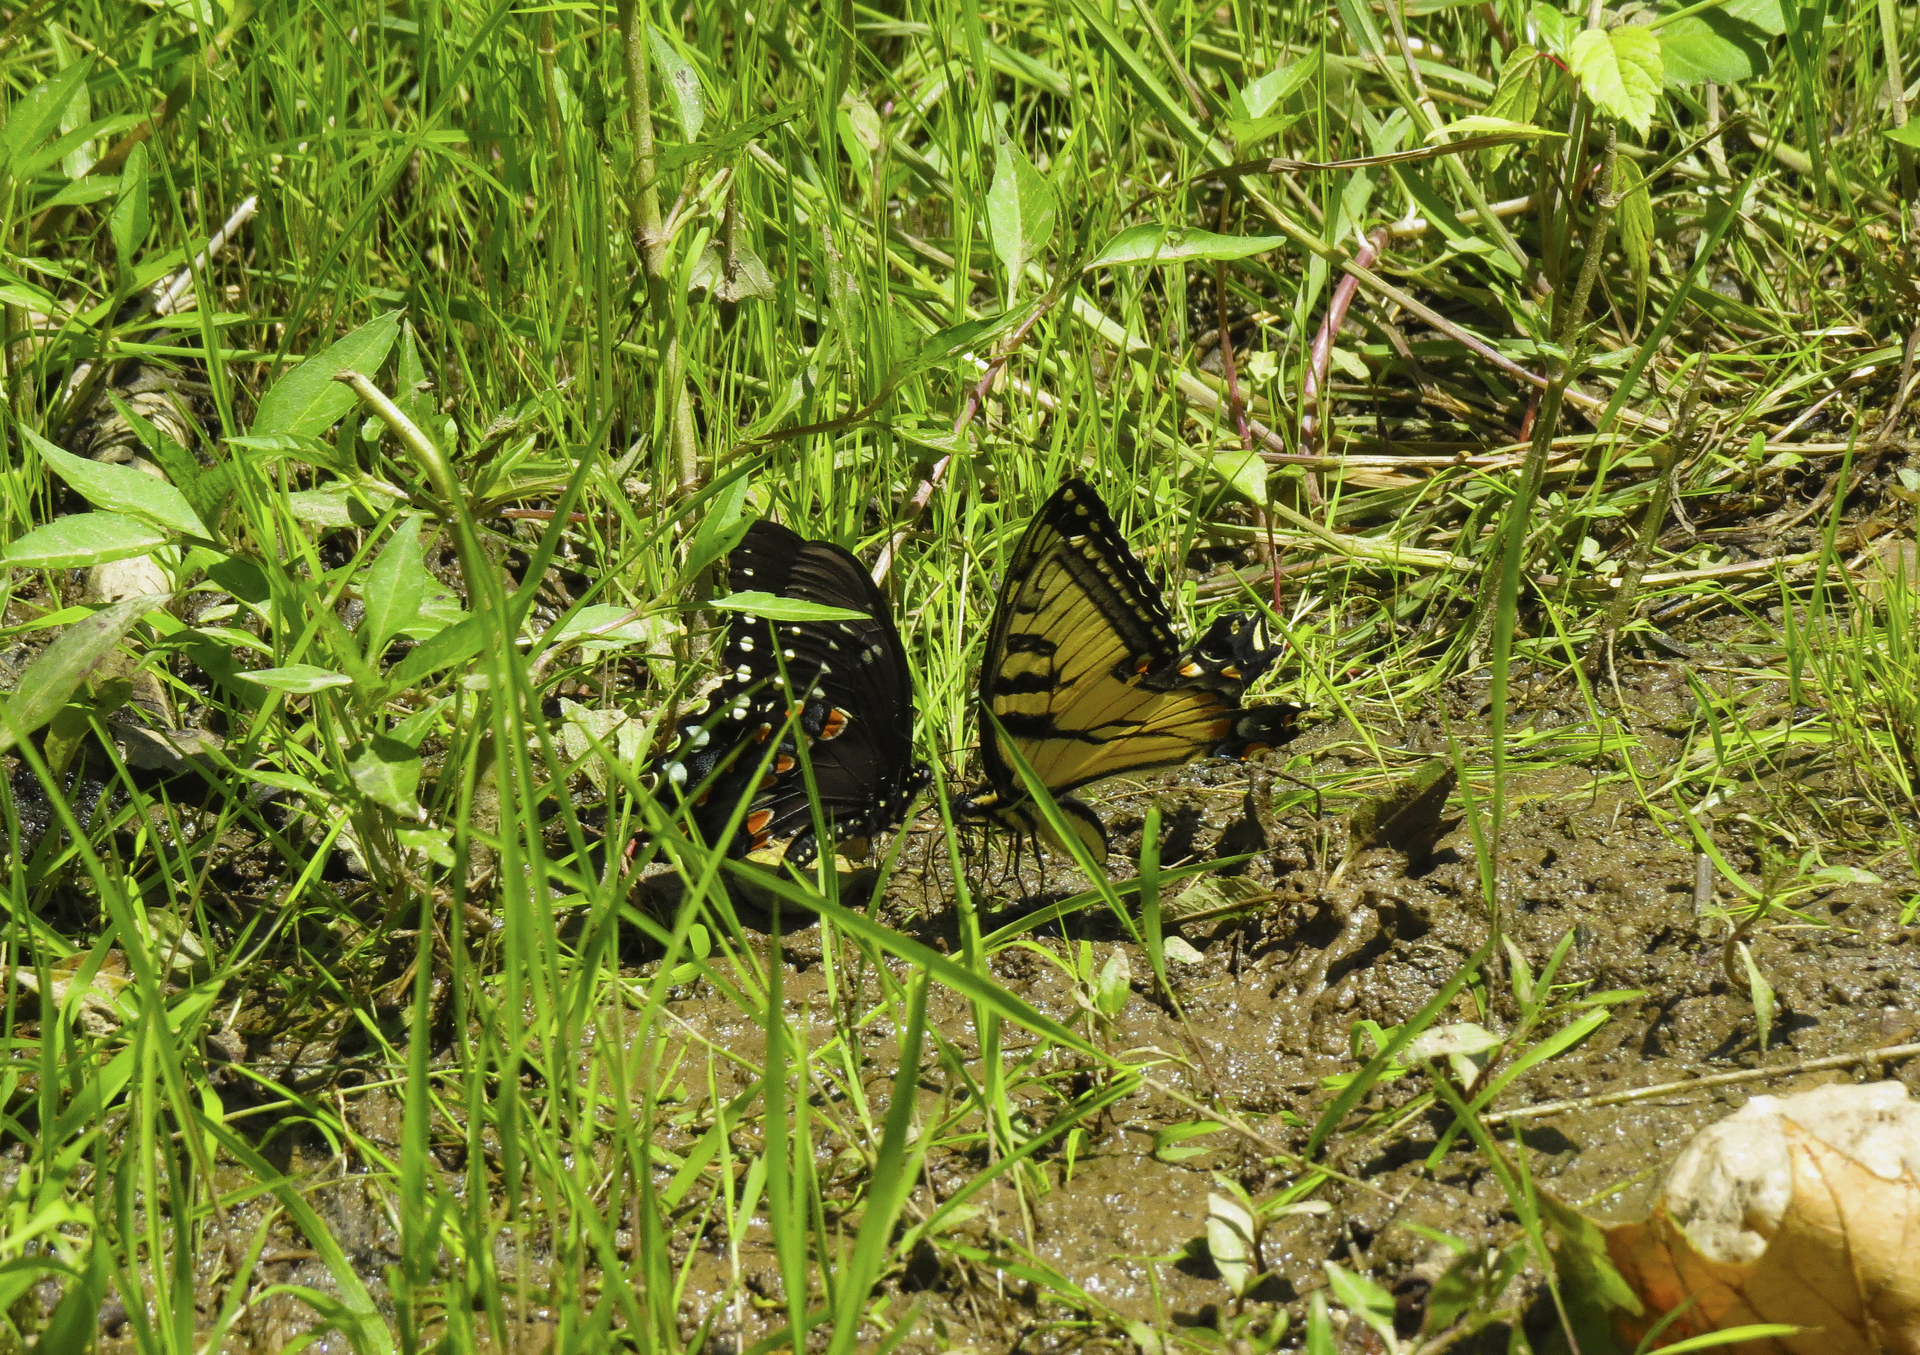 butterfly-animals-kayaking-maryland-water-nature-outdoors-c&o-canal-potomac-river